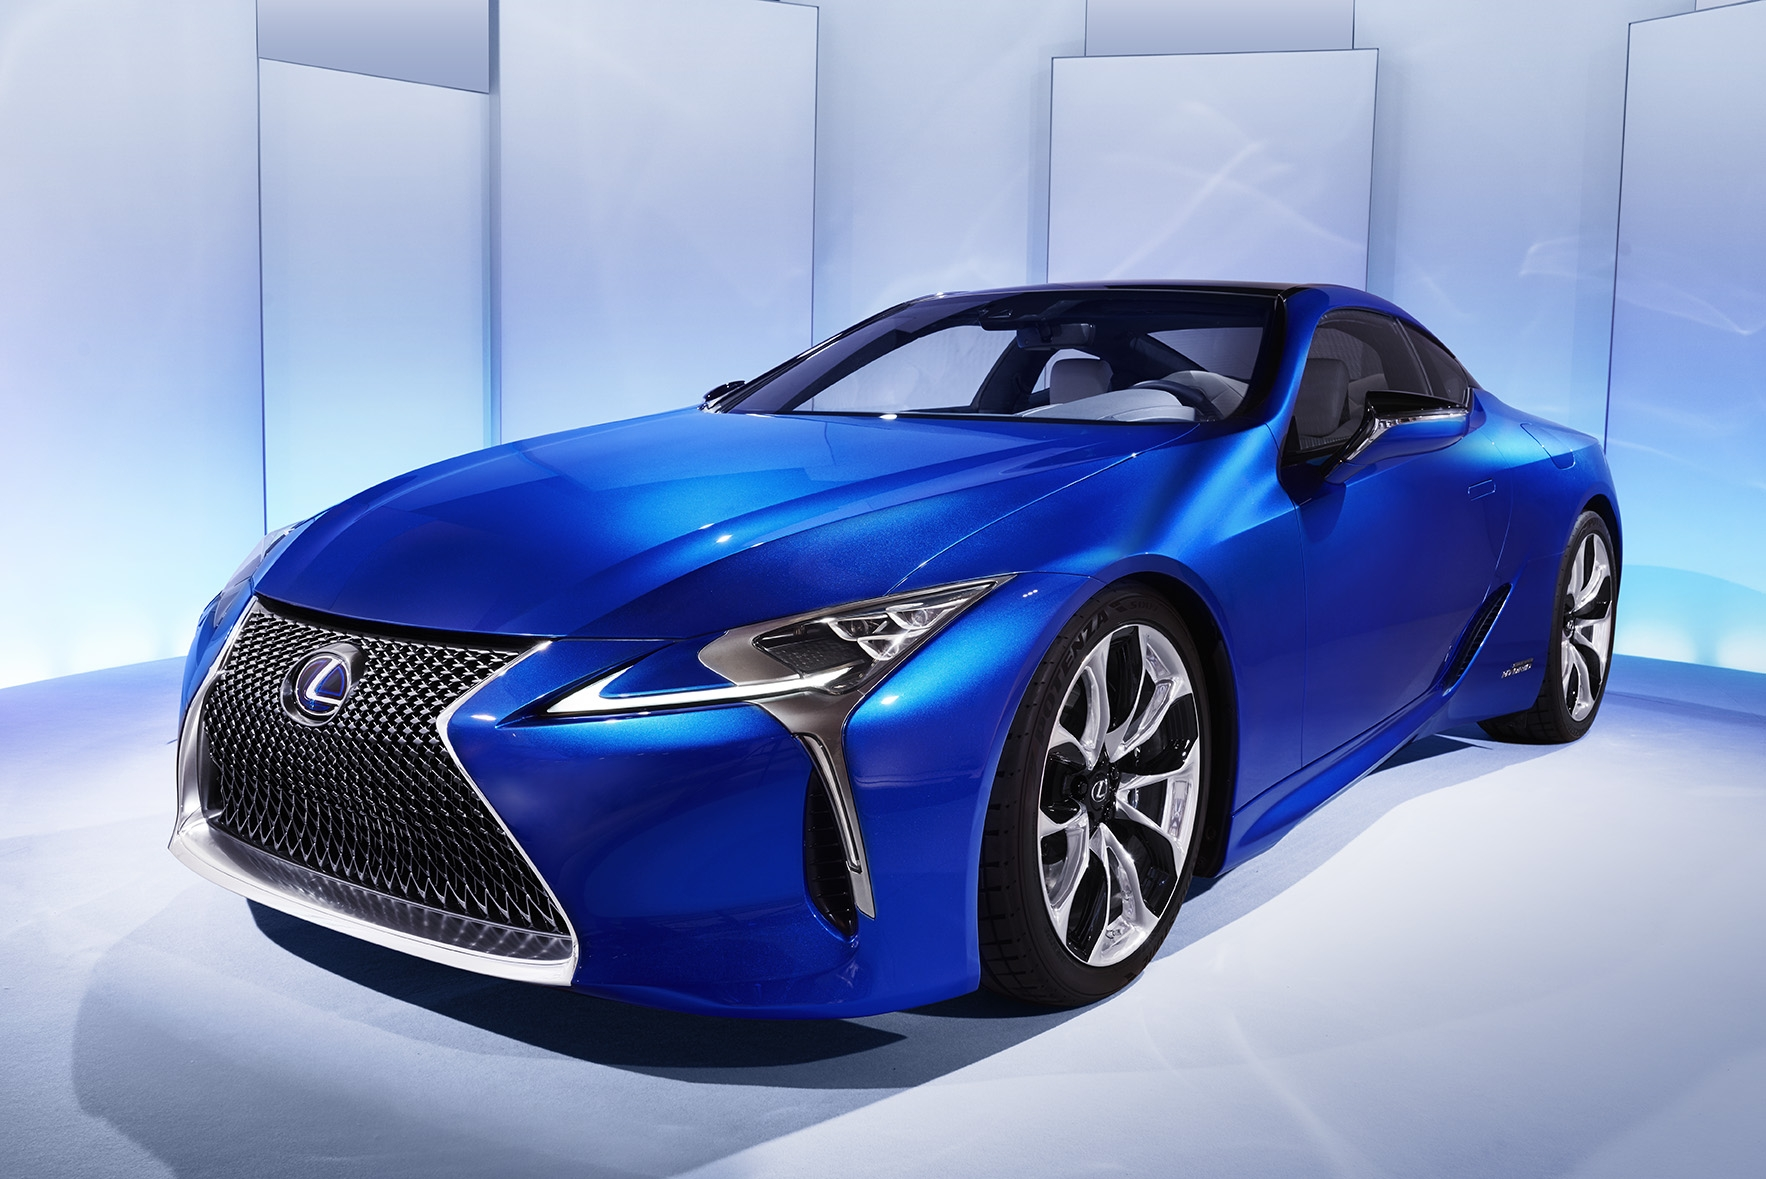 Presentation Video Lexus Lc500h Quand Hybride Rime Avec Sportivite 106854 also 2017 vision mercedes maybach 6 k Wallpapers moreover 91 Porsche 911 964 C2 A C Heater Box With Blower Motors 96484357311 Db200844 further 30318 also Ds3 Cabrio 2016. on lexus cabriolet